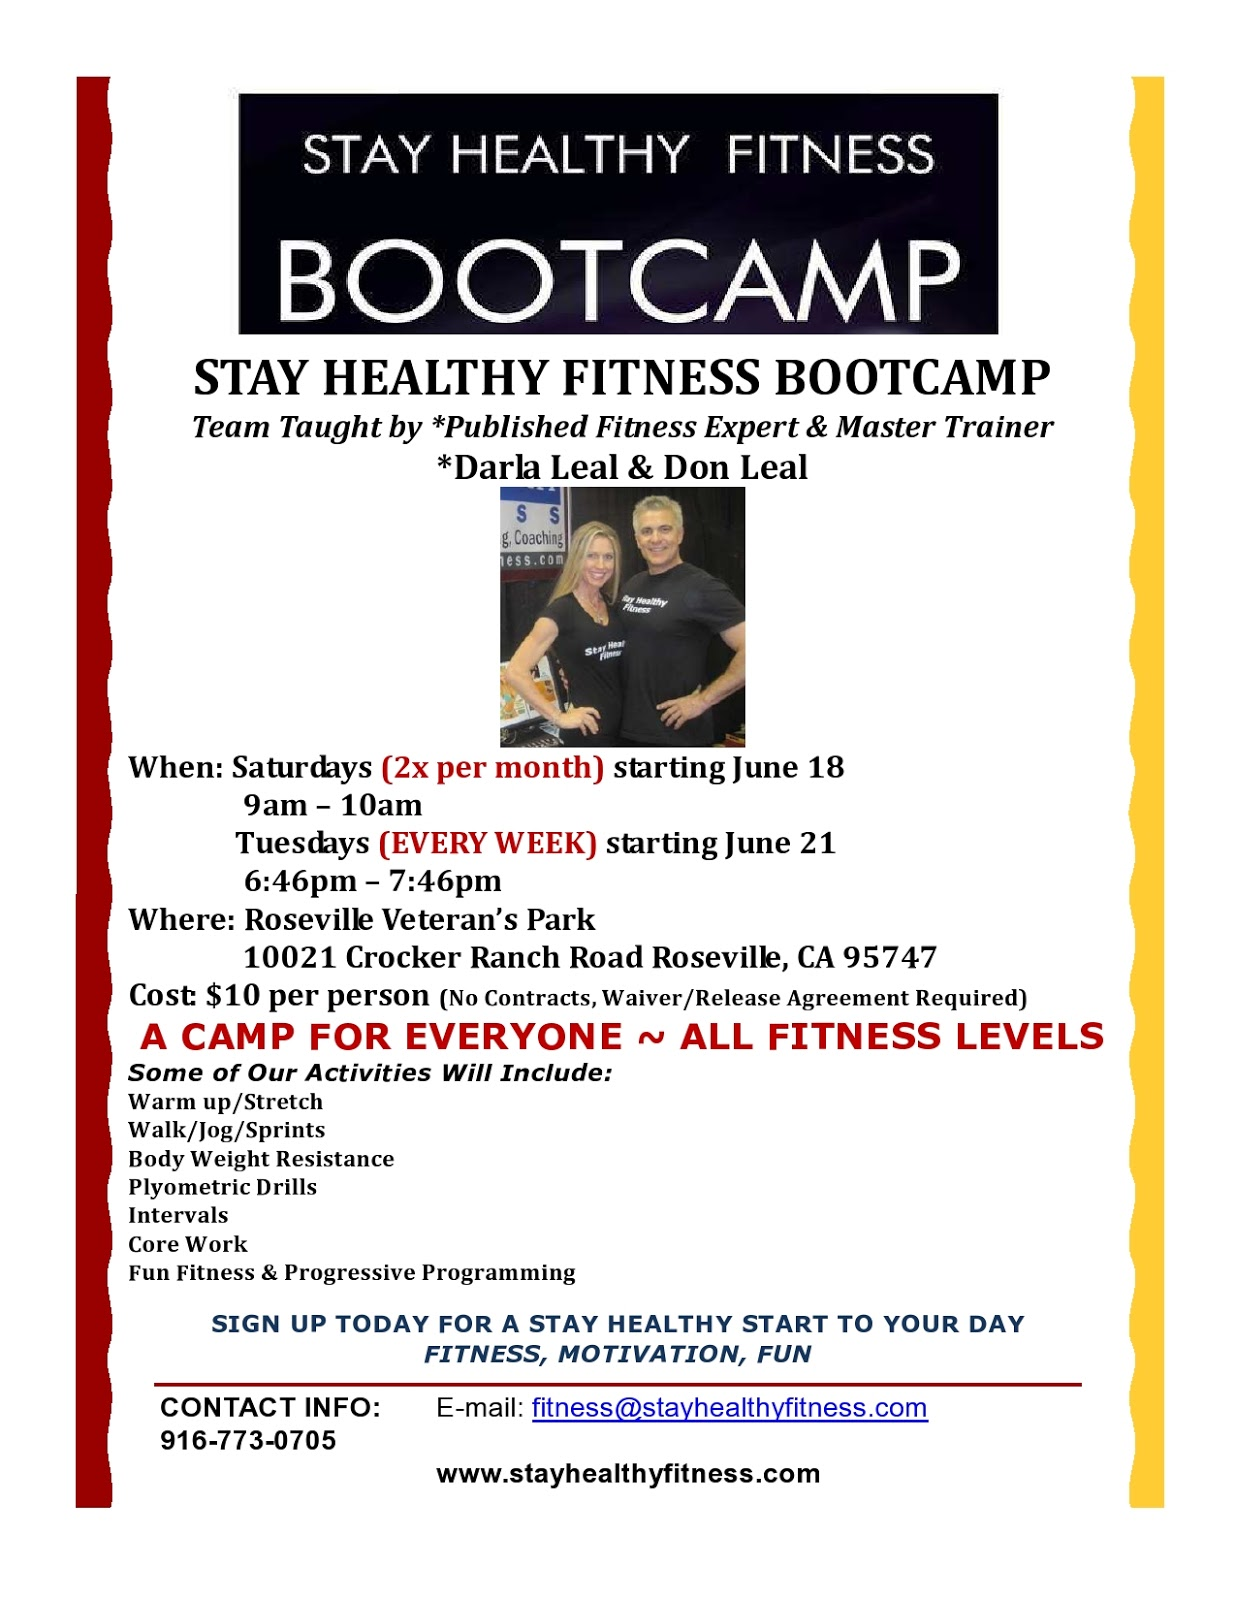 STAY HEALTHY FITNESS: YES… I said Bootcamp